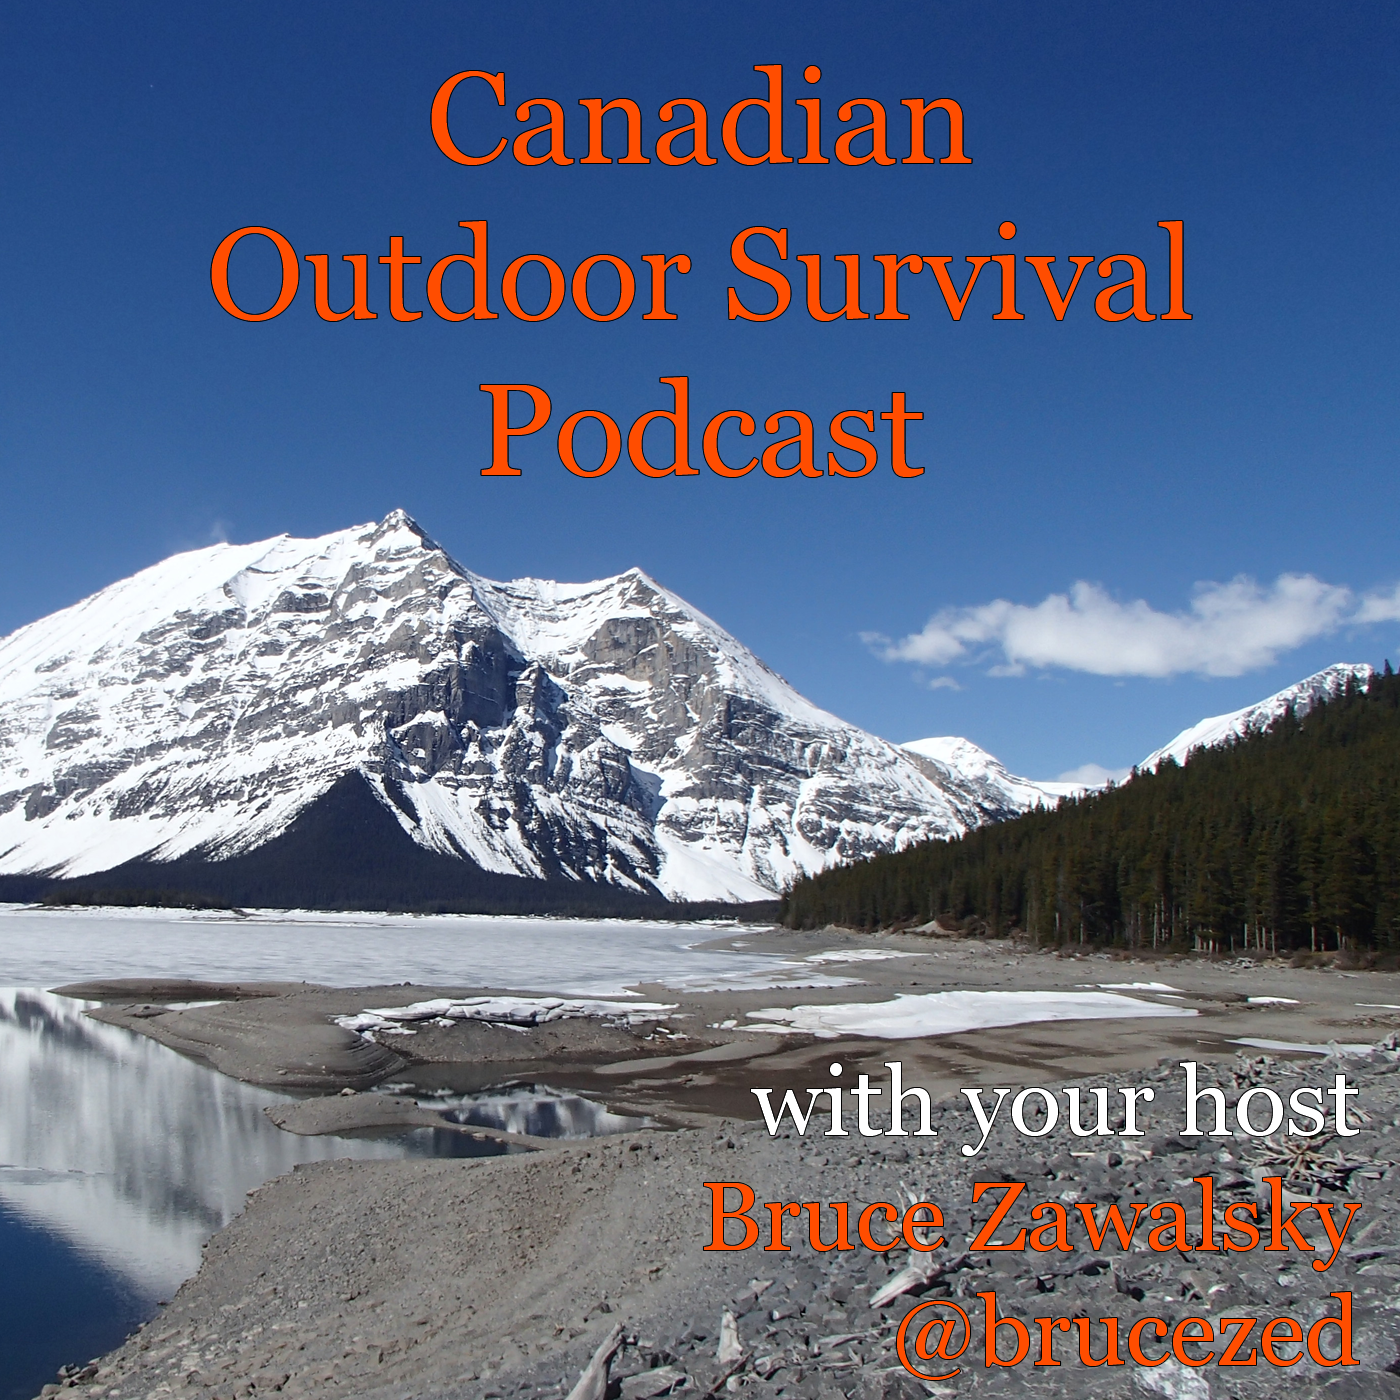 Canadian Outdoor Survival Podcast